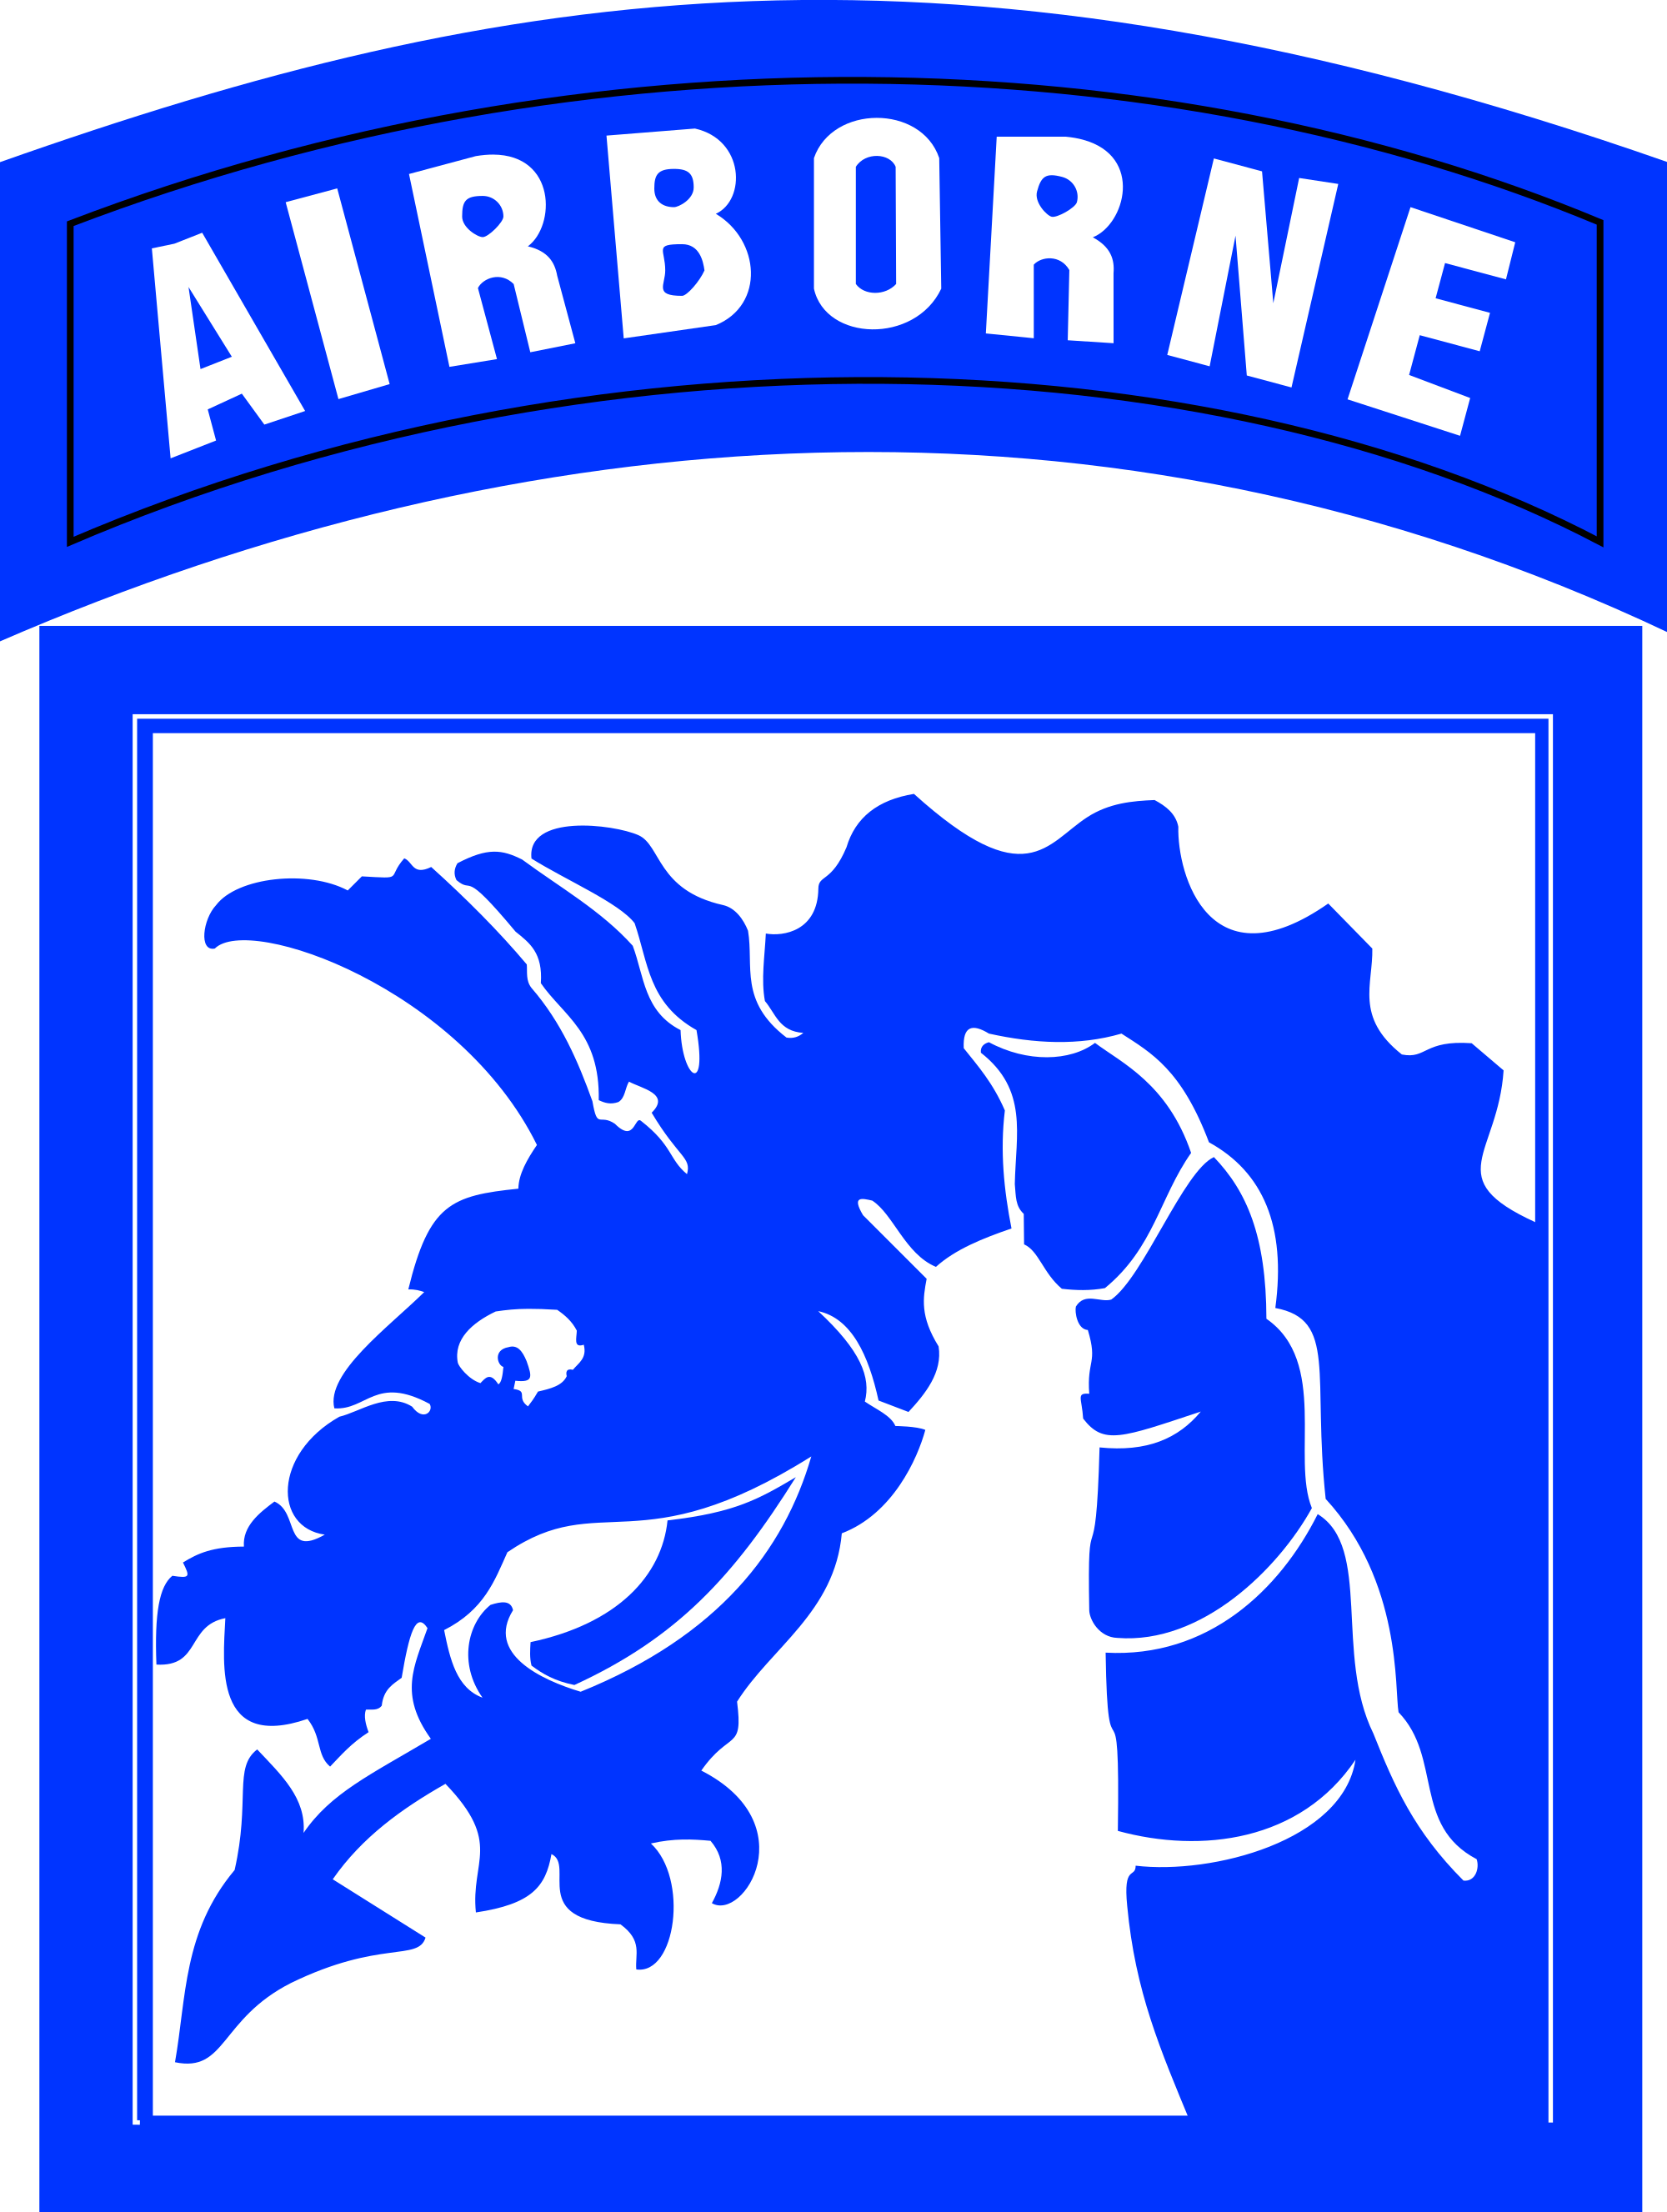 I just got orders to go to 18th Airborne Corps, Fort Bragg